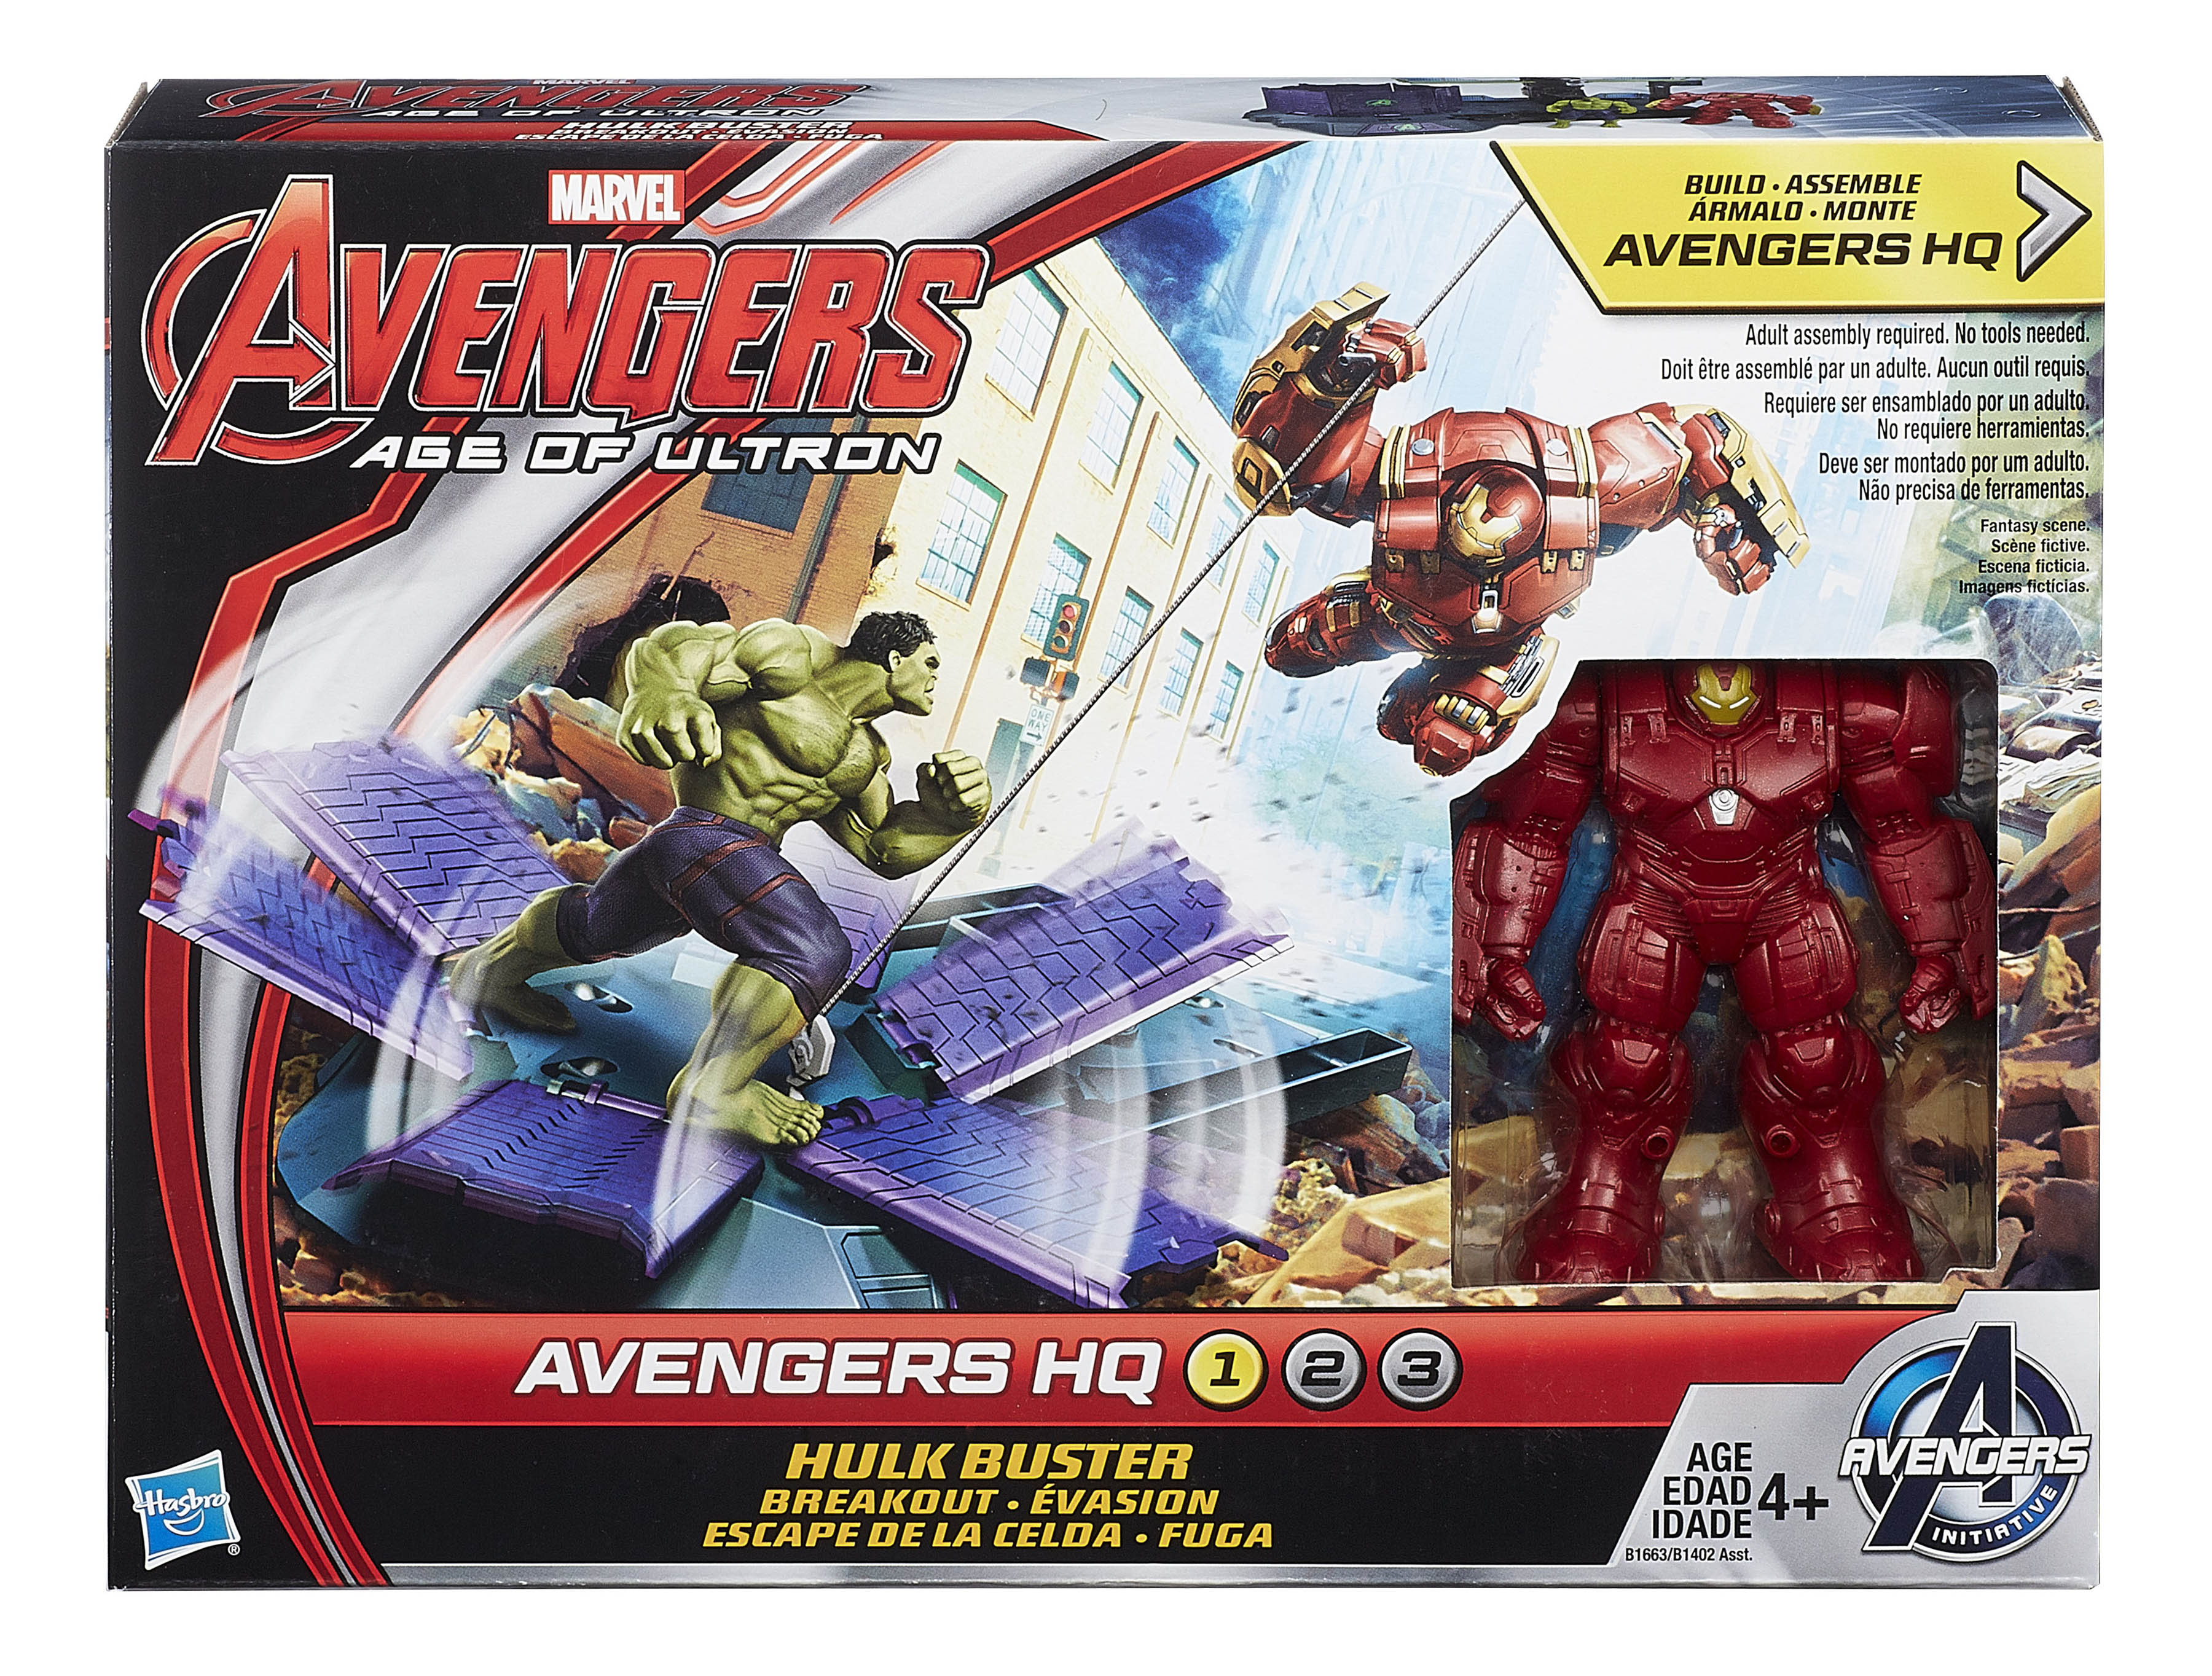 The Avengers Age of Ultron Hulkbuster Avengers Age of Ultron Toys